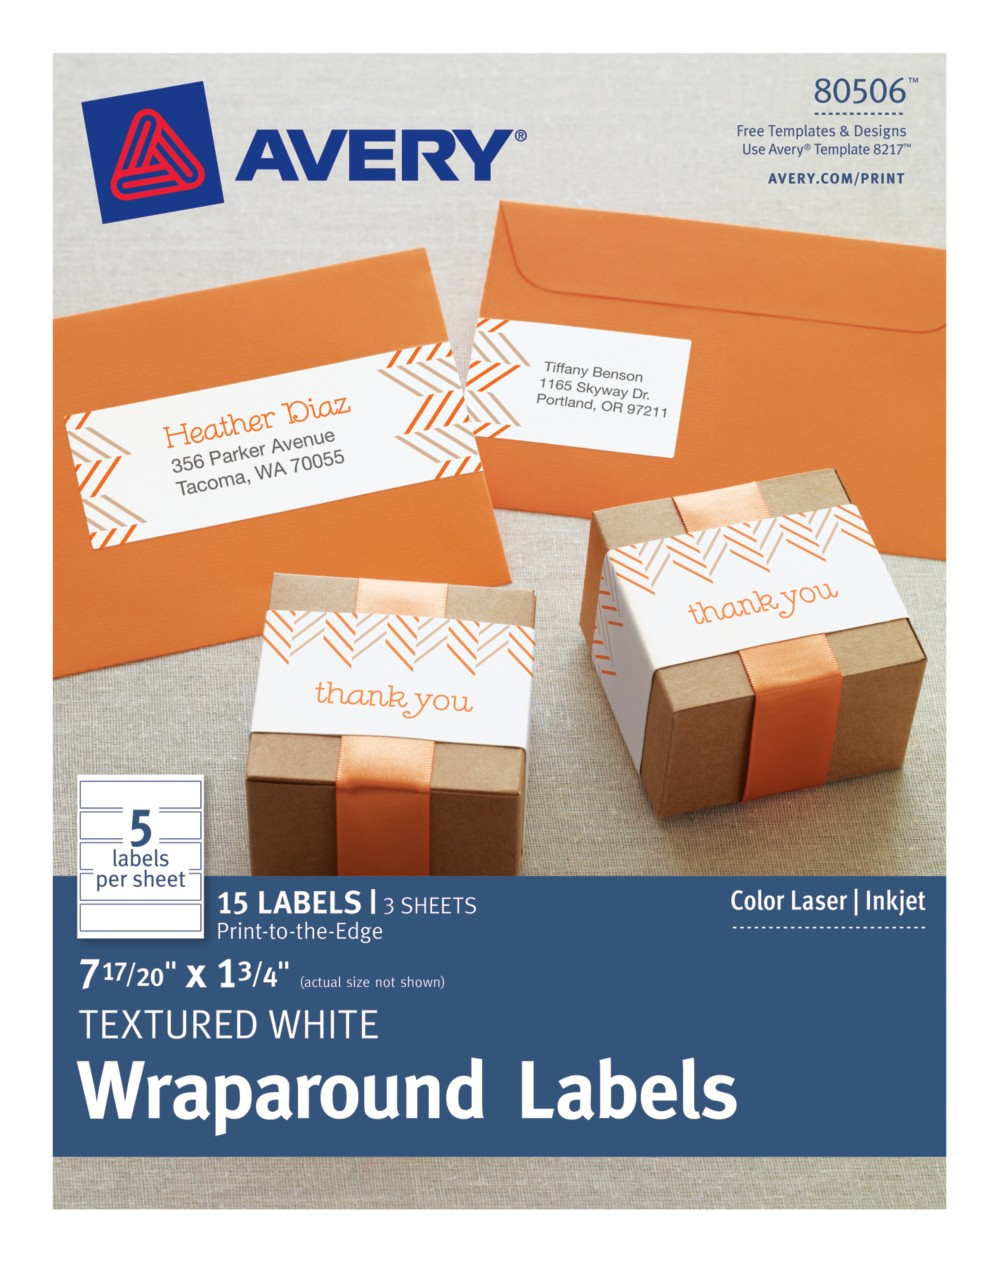 Avery Wraparound Labels (80506)